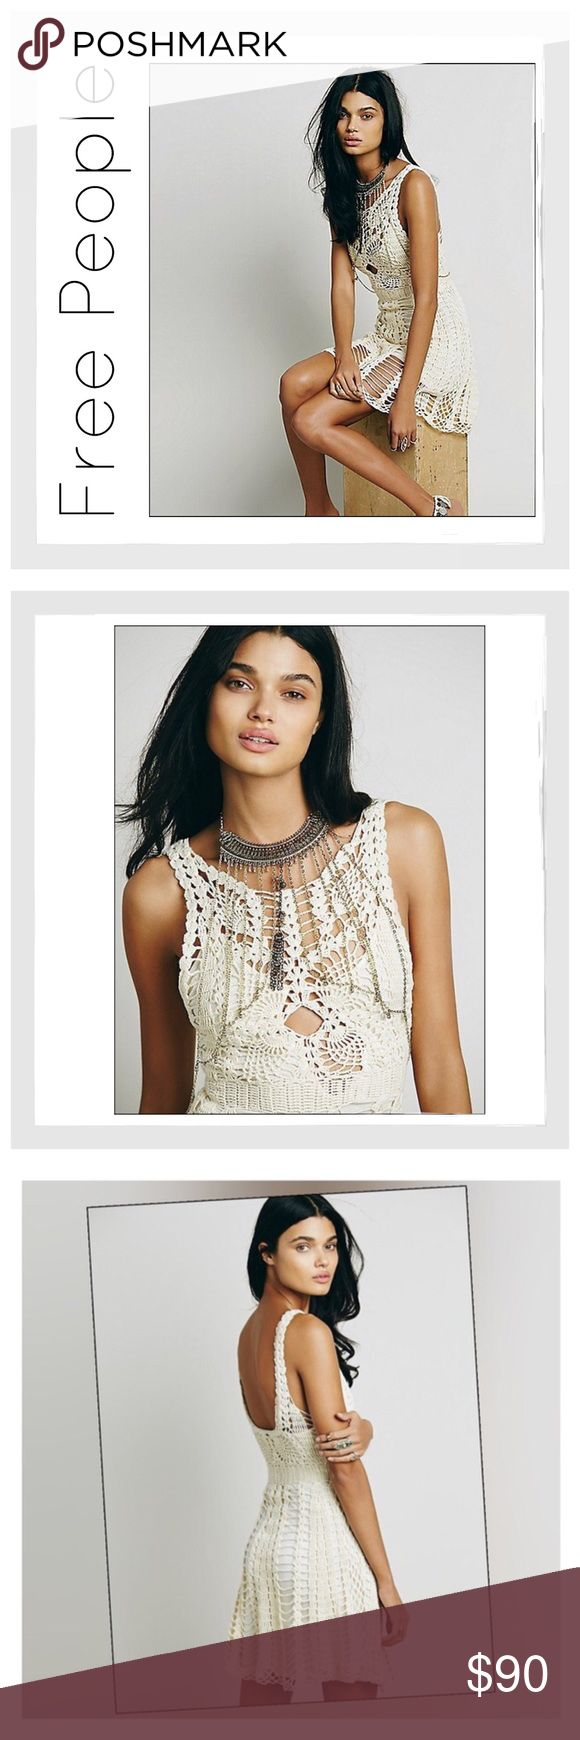 ✨Free People Macrame Mini Dress✨ ✨Boho Chic And Charming Free People Open Crochet Mini Dress✨Cotton/Ramie Blend✨Fully Lined With Rayon Slip✨Fit-and-flare silhouette has a darted and tailored bodice that flows into a lovely A-line skirt✨Scoop neckline with keyhole cutout at slip collar✨Natural hem✨NWT✨Size Medium✨ Free People Dresses Mini